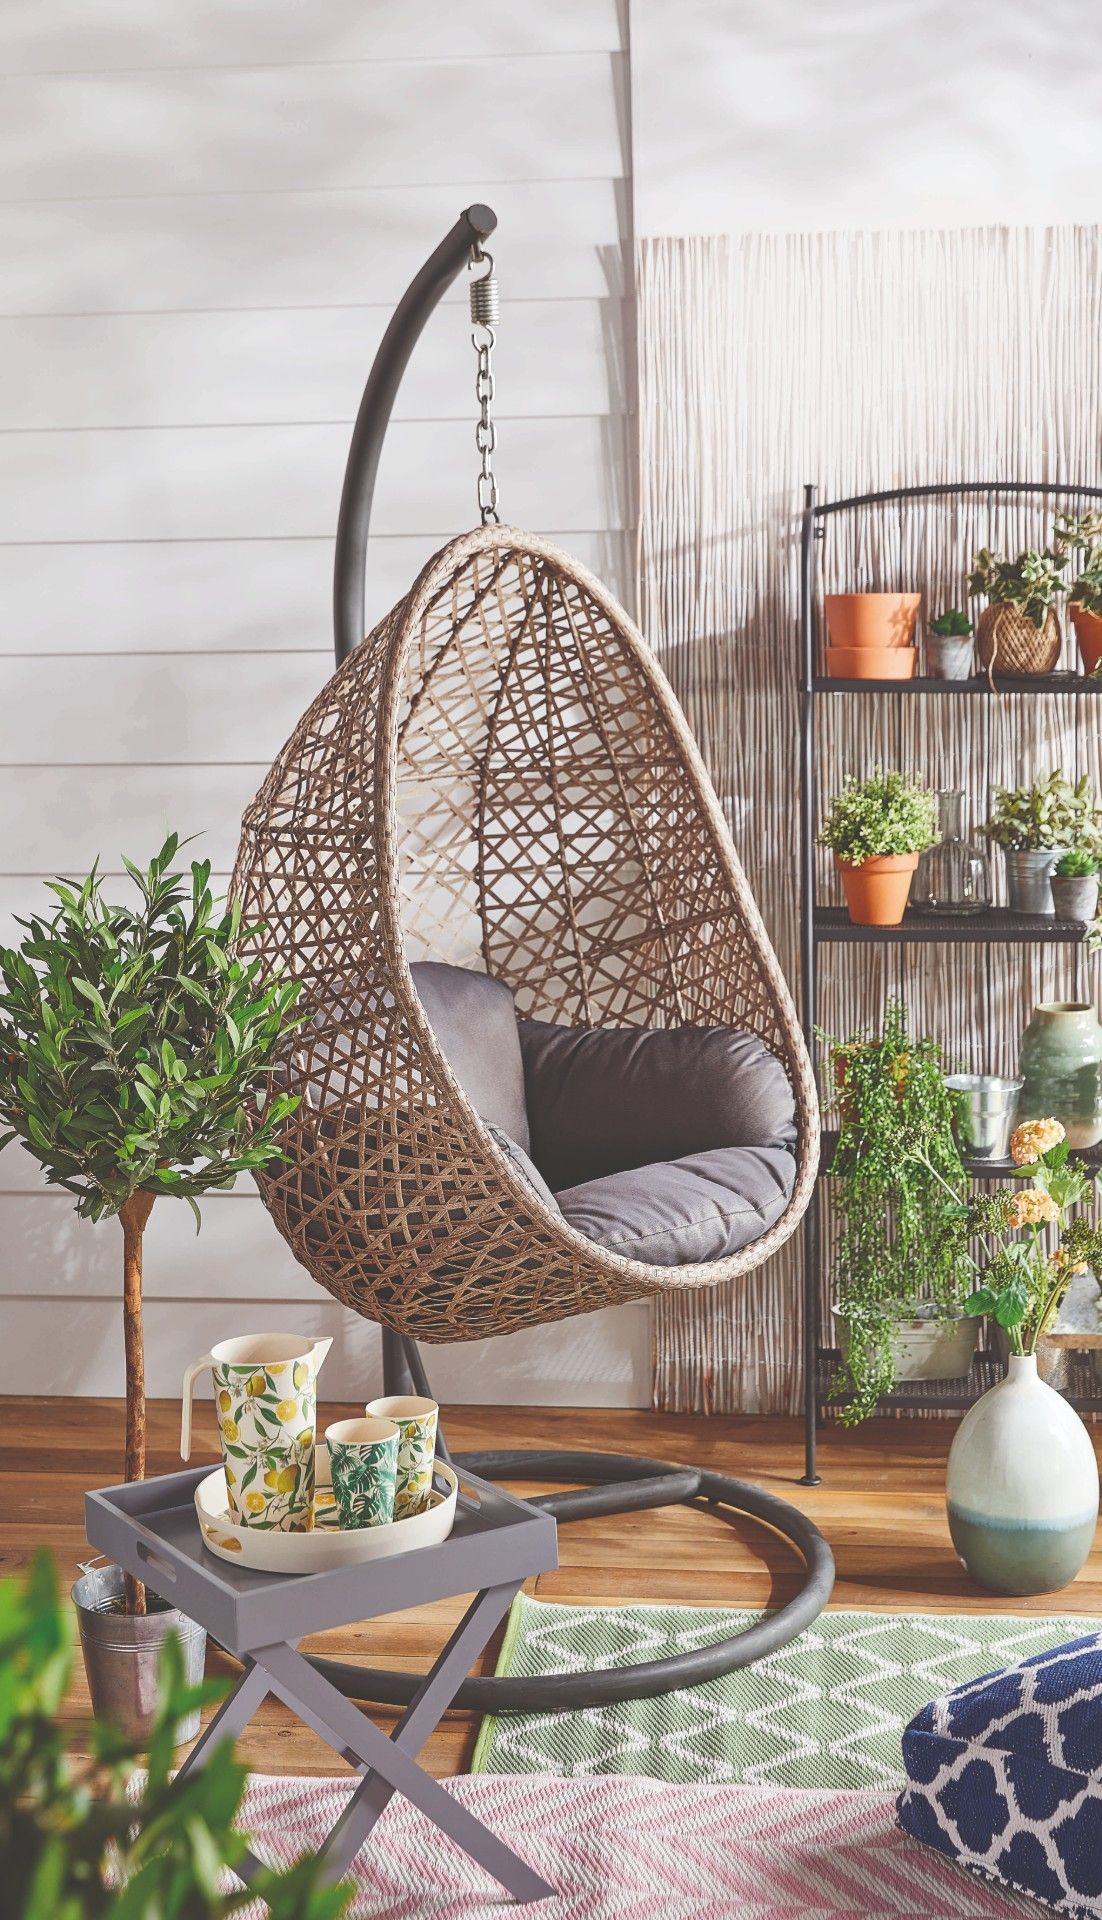 Aldi S Bestselling Hanging Egg Chair Is Back This Weekend